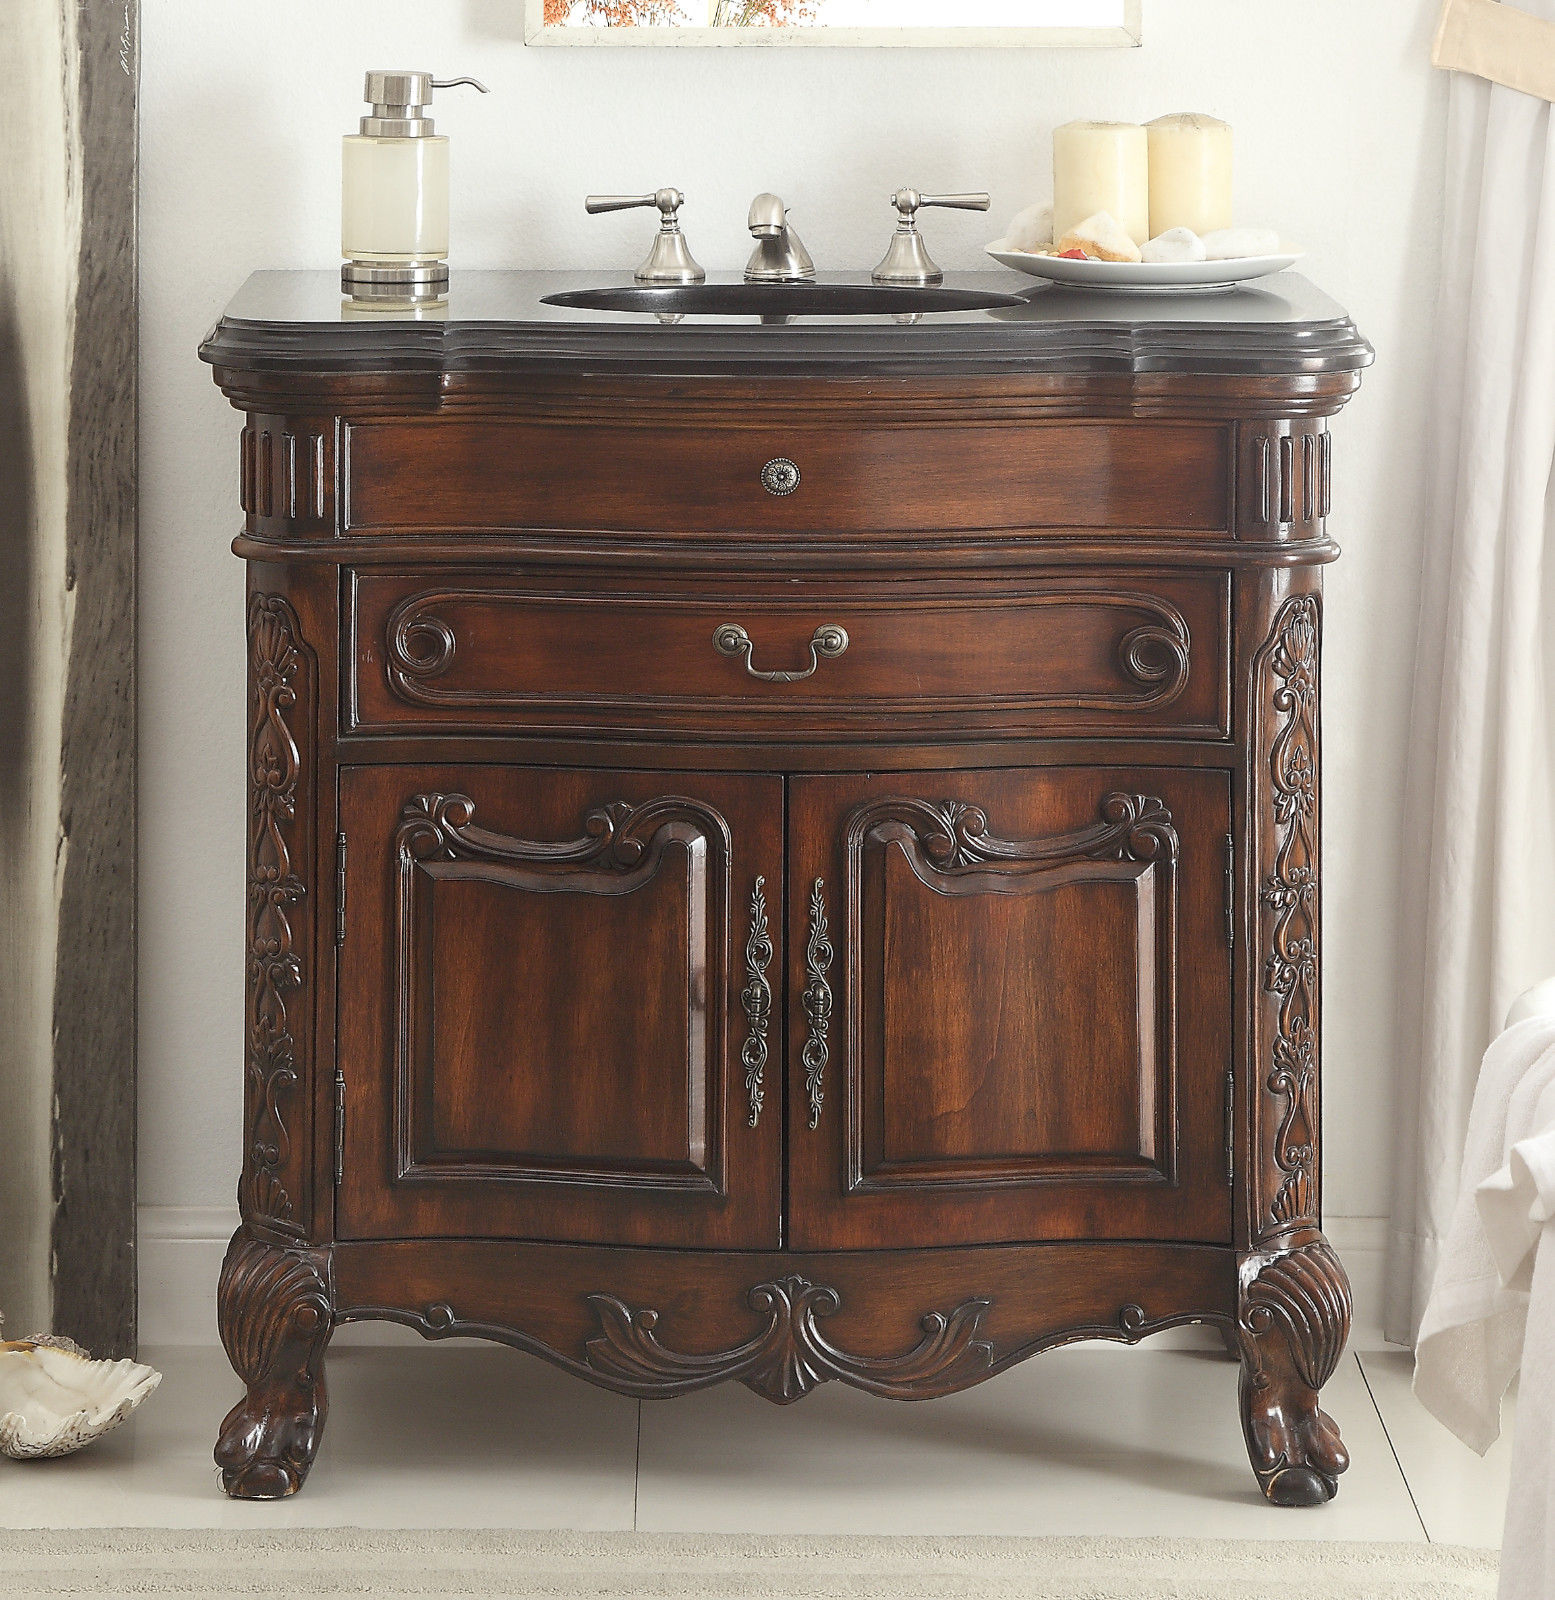 ... Adelina 36 inch Antique Mahogany Sink Vanity - Adelina 36 Inch Antique Mahogany Bathroom Sink Vanity